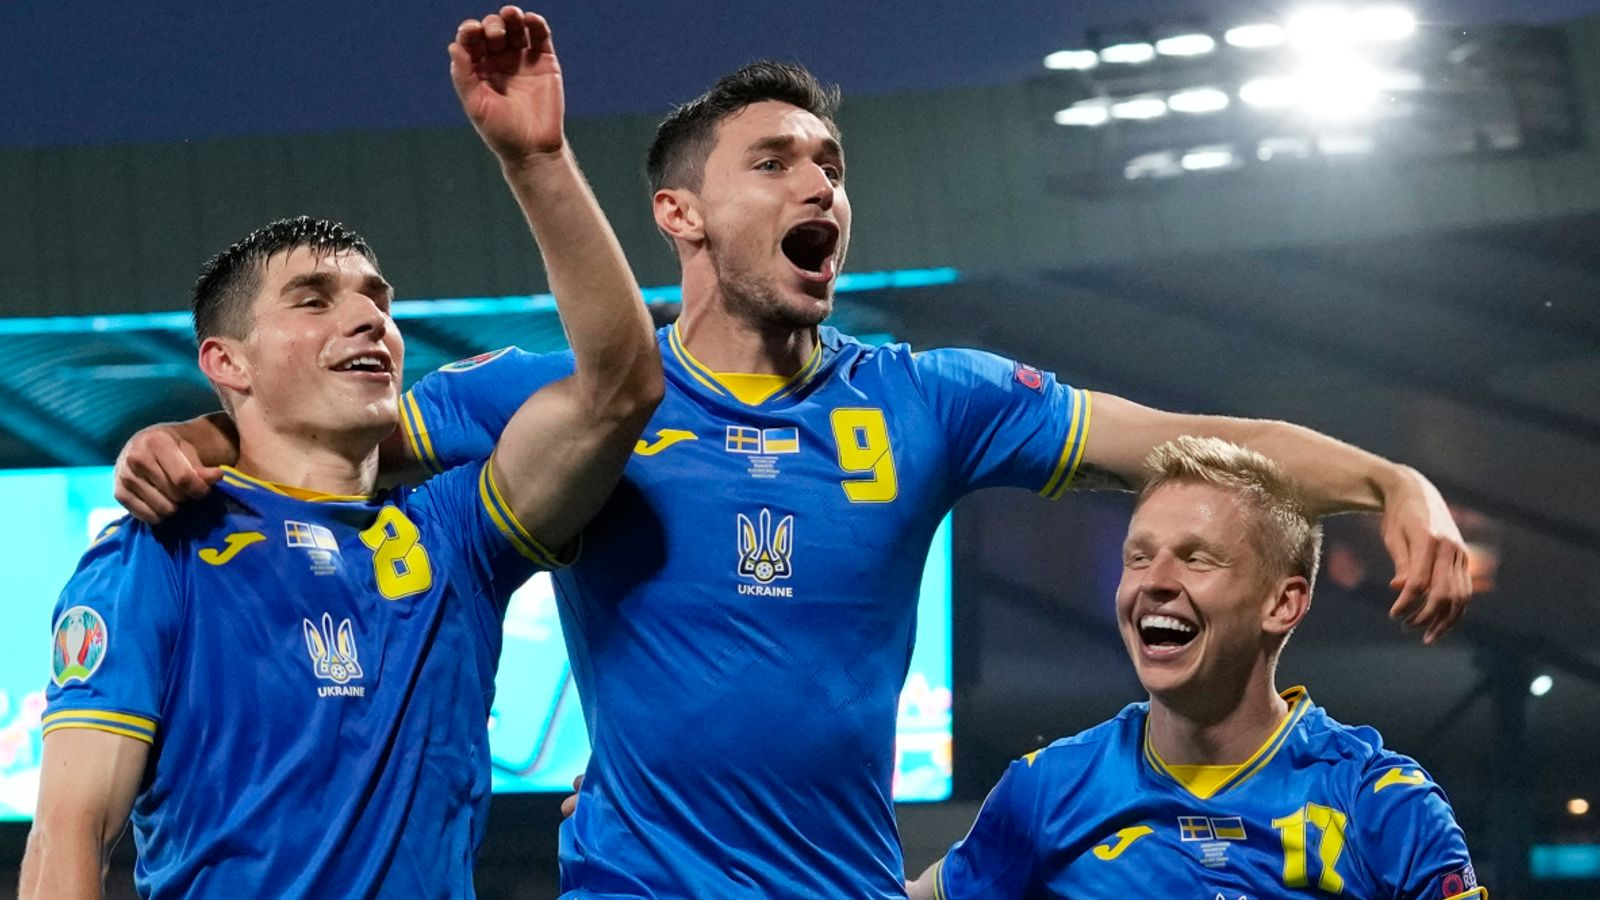 Ukraine scouting report: England set to come up against tired but tactically smart opponents in Euro 2020 quarter-final